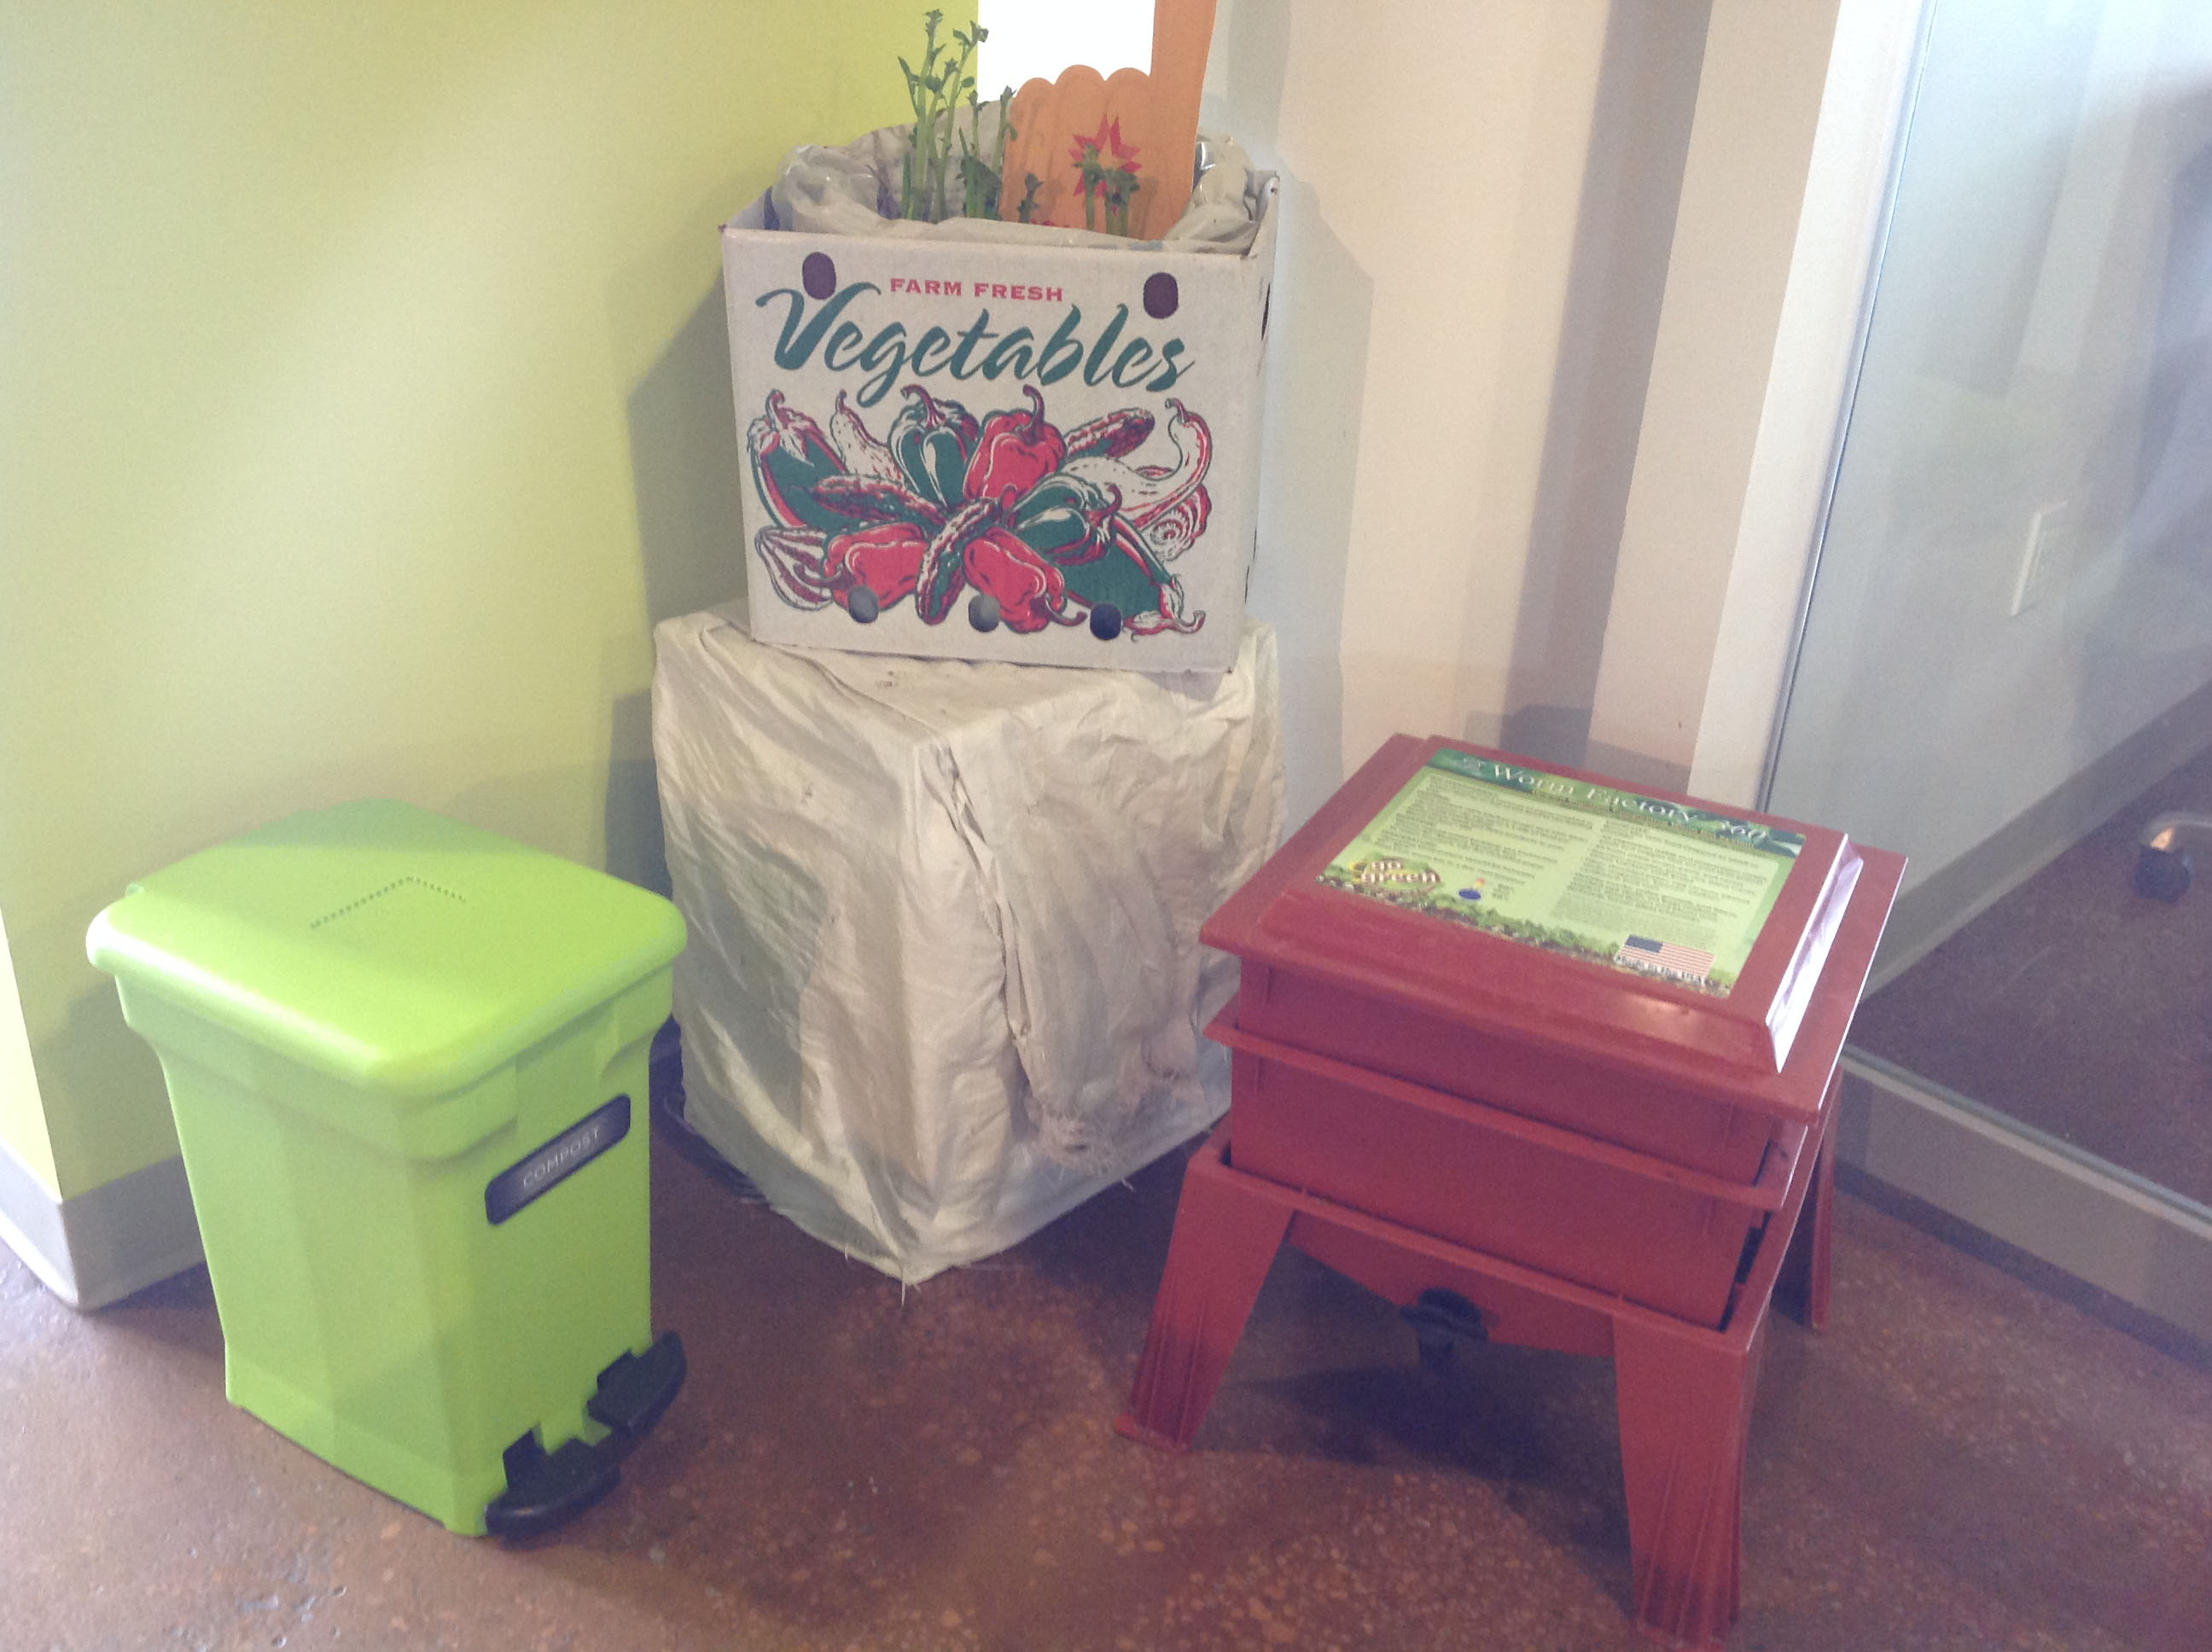 Our office composting system